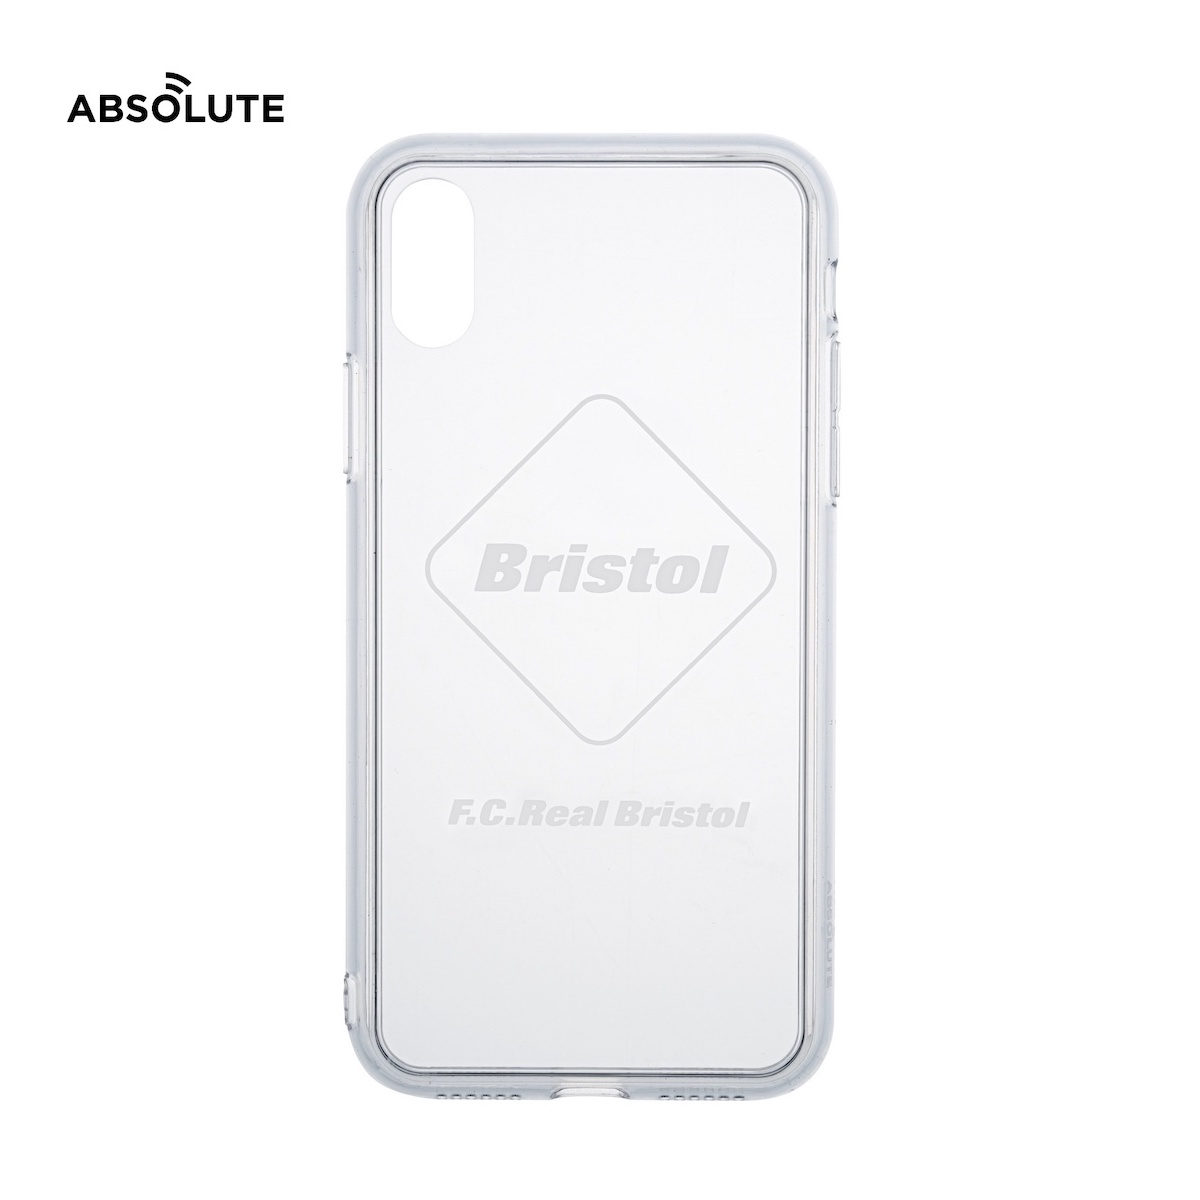 F.C.Real Bristol / ABSOLUTE EMBLEM PHONE CASE for iPhone X / XS (White)